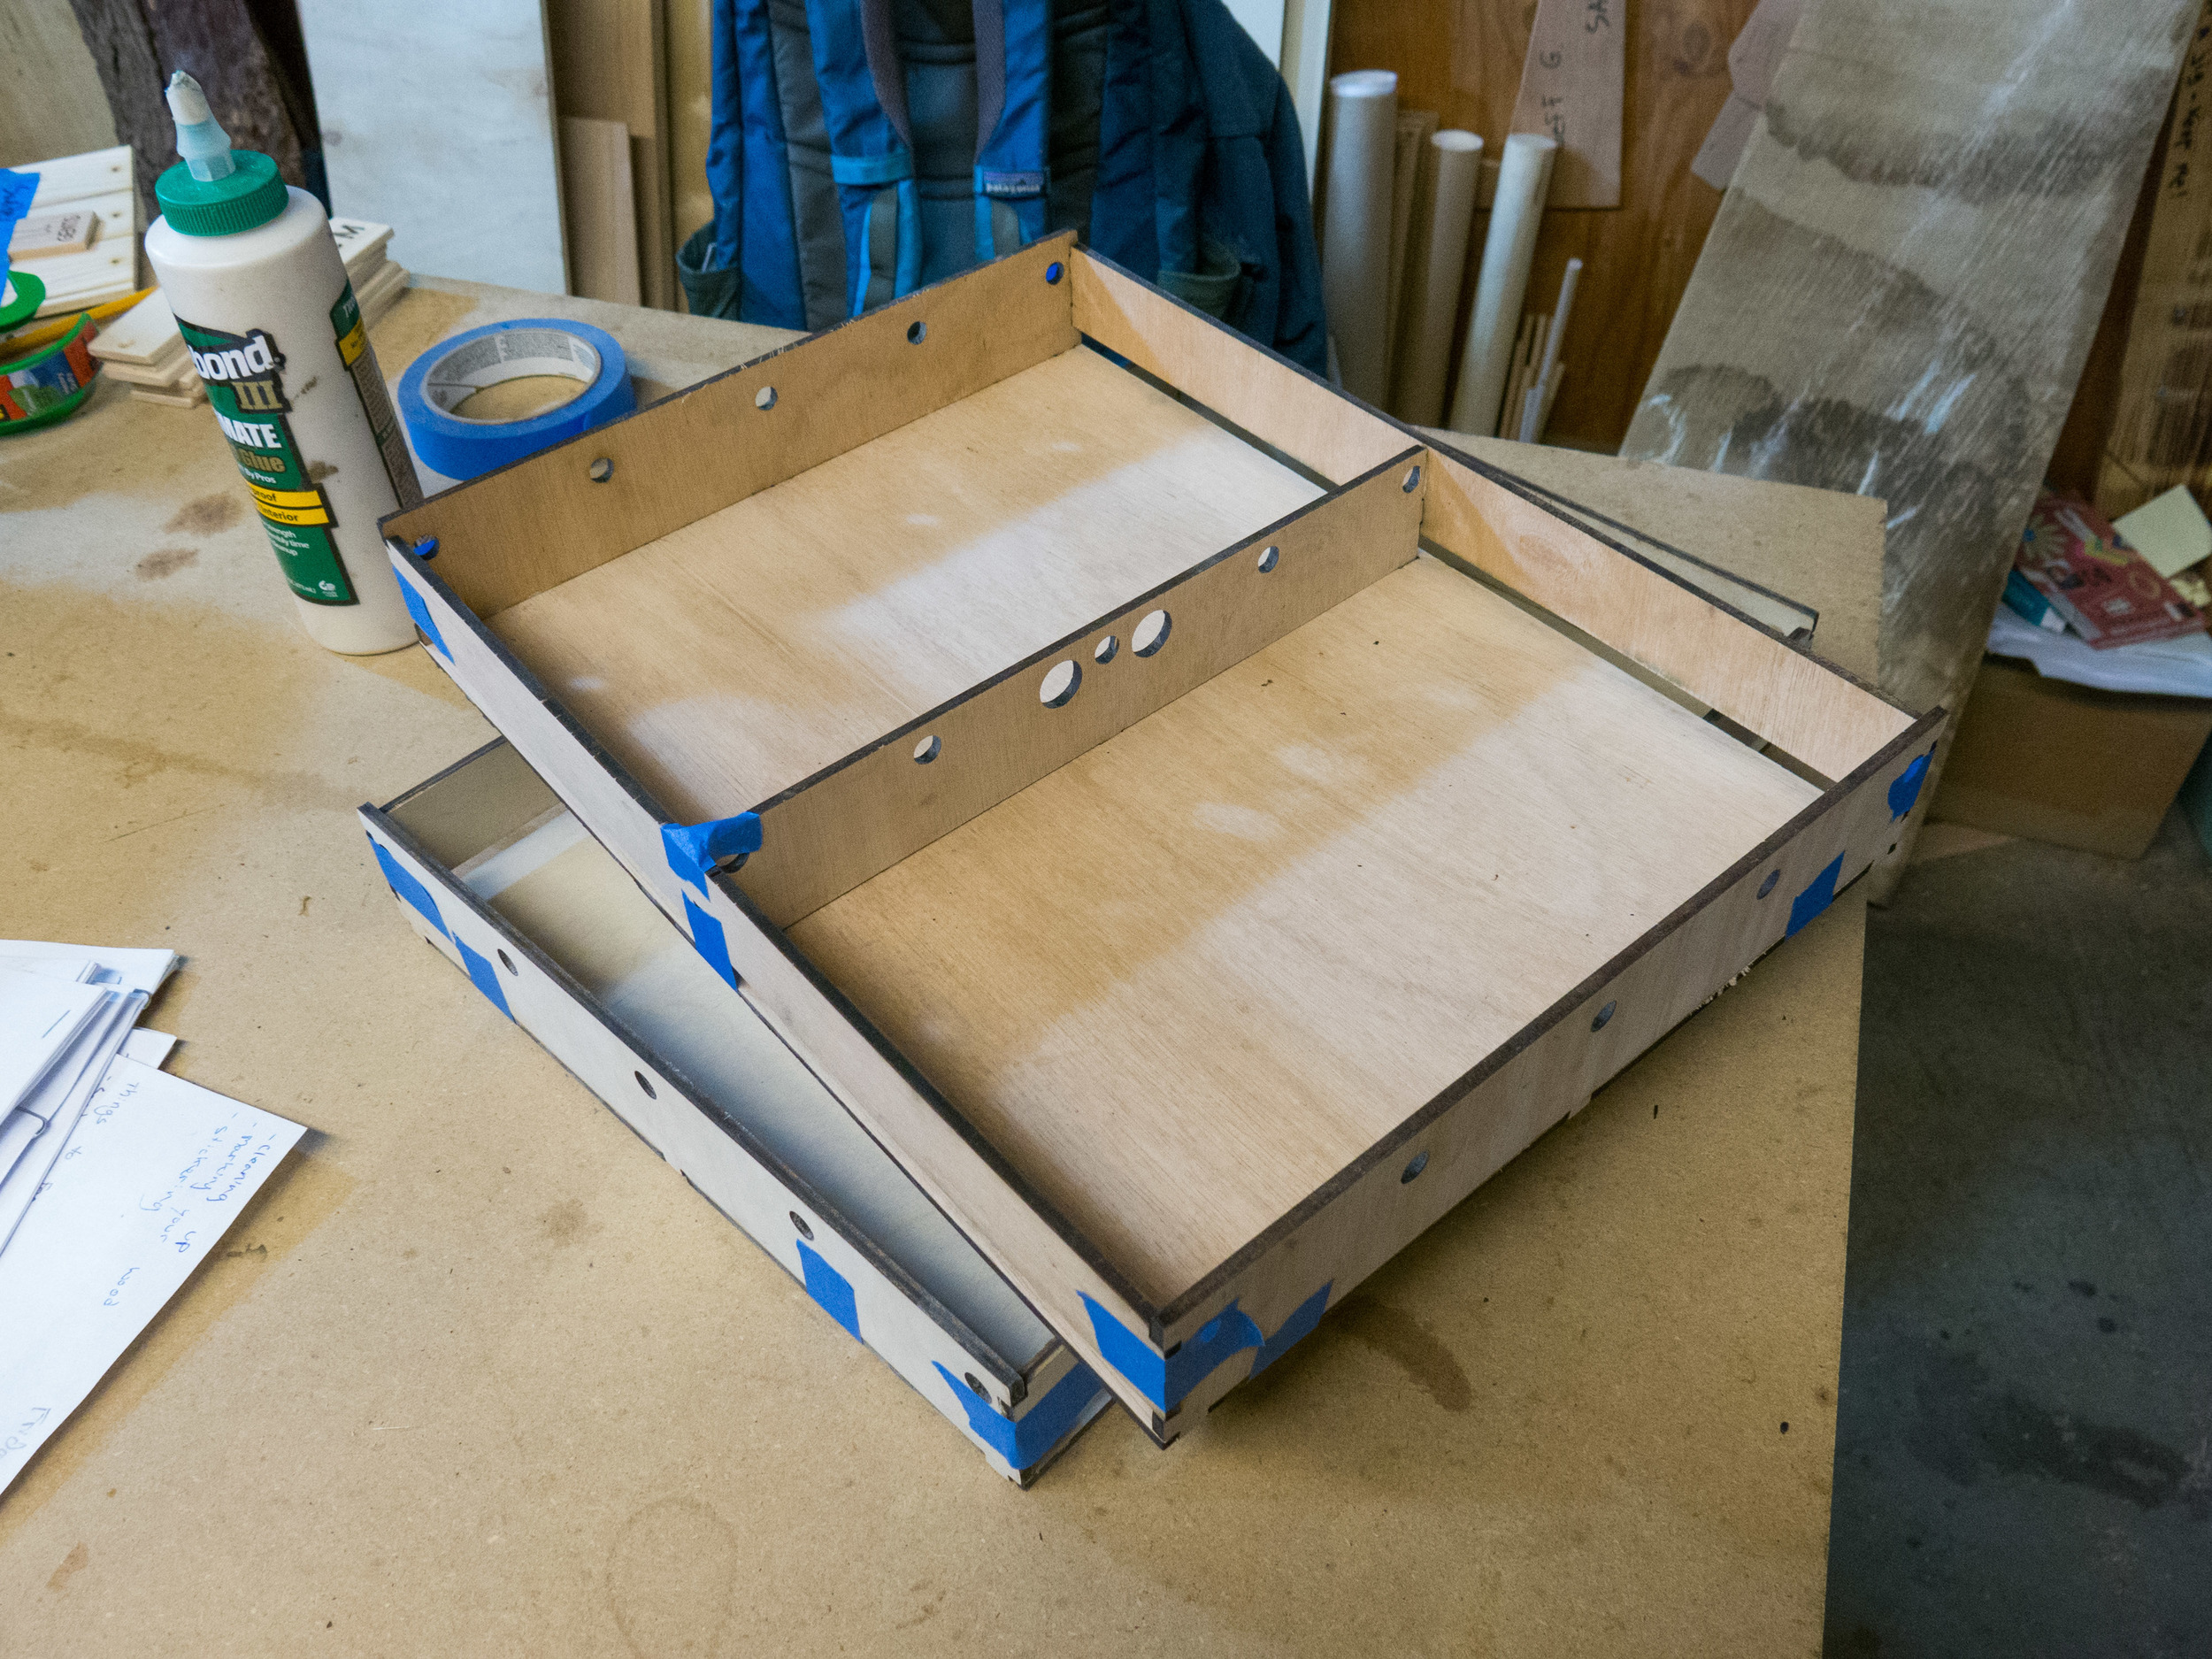 Trays gluing up